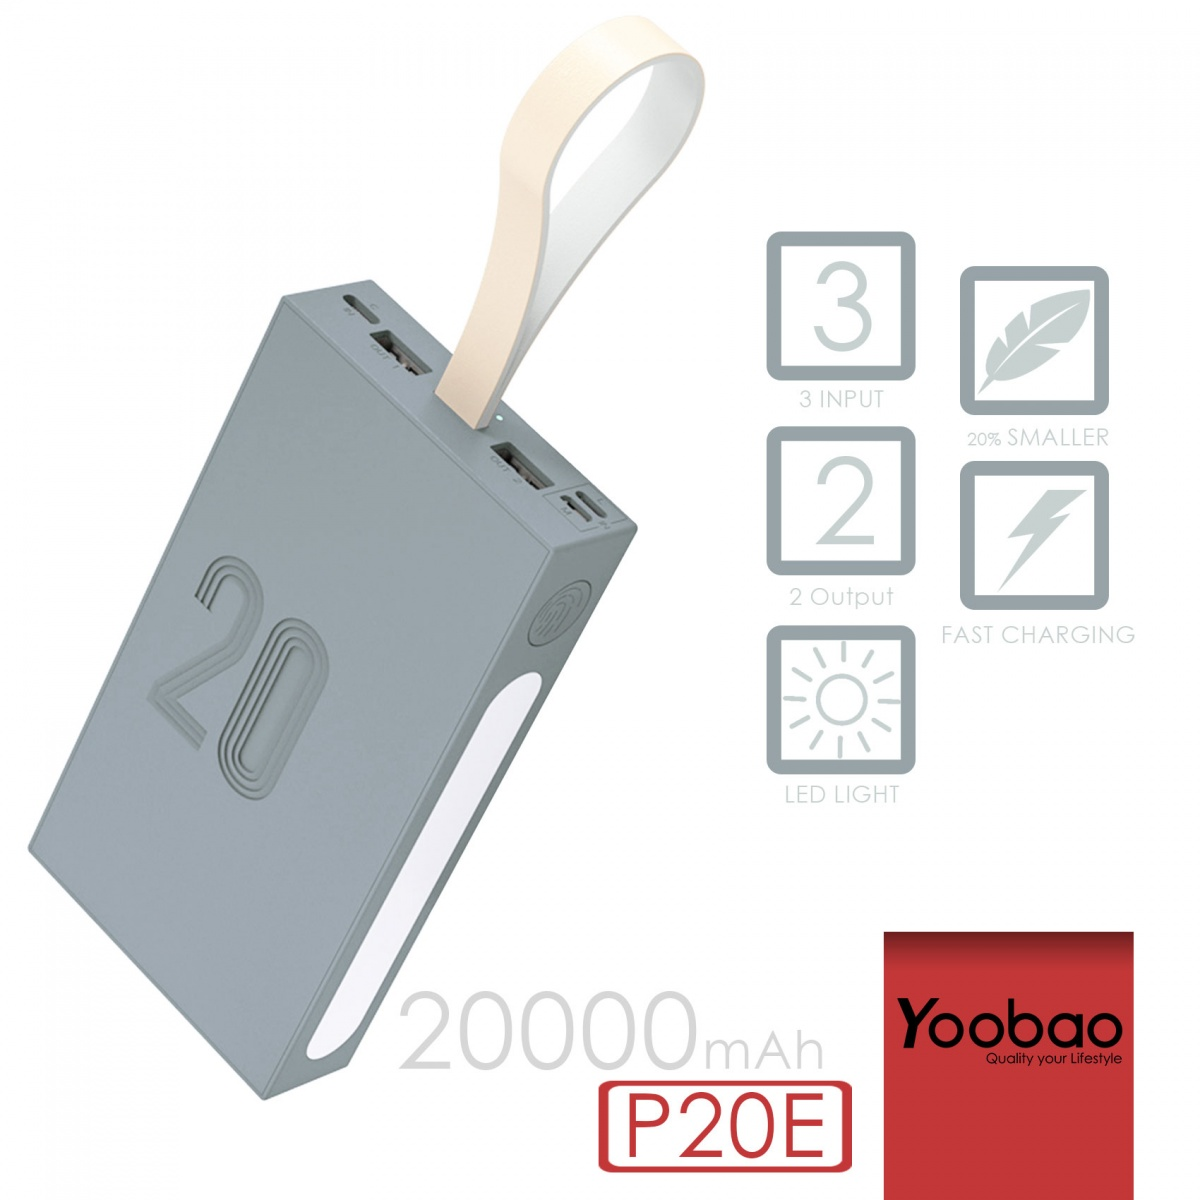 Yoobao P20E Power Explorer 20000 Portable Charger Three Input Two Output With LED Lamp  - Gray